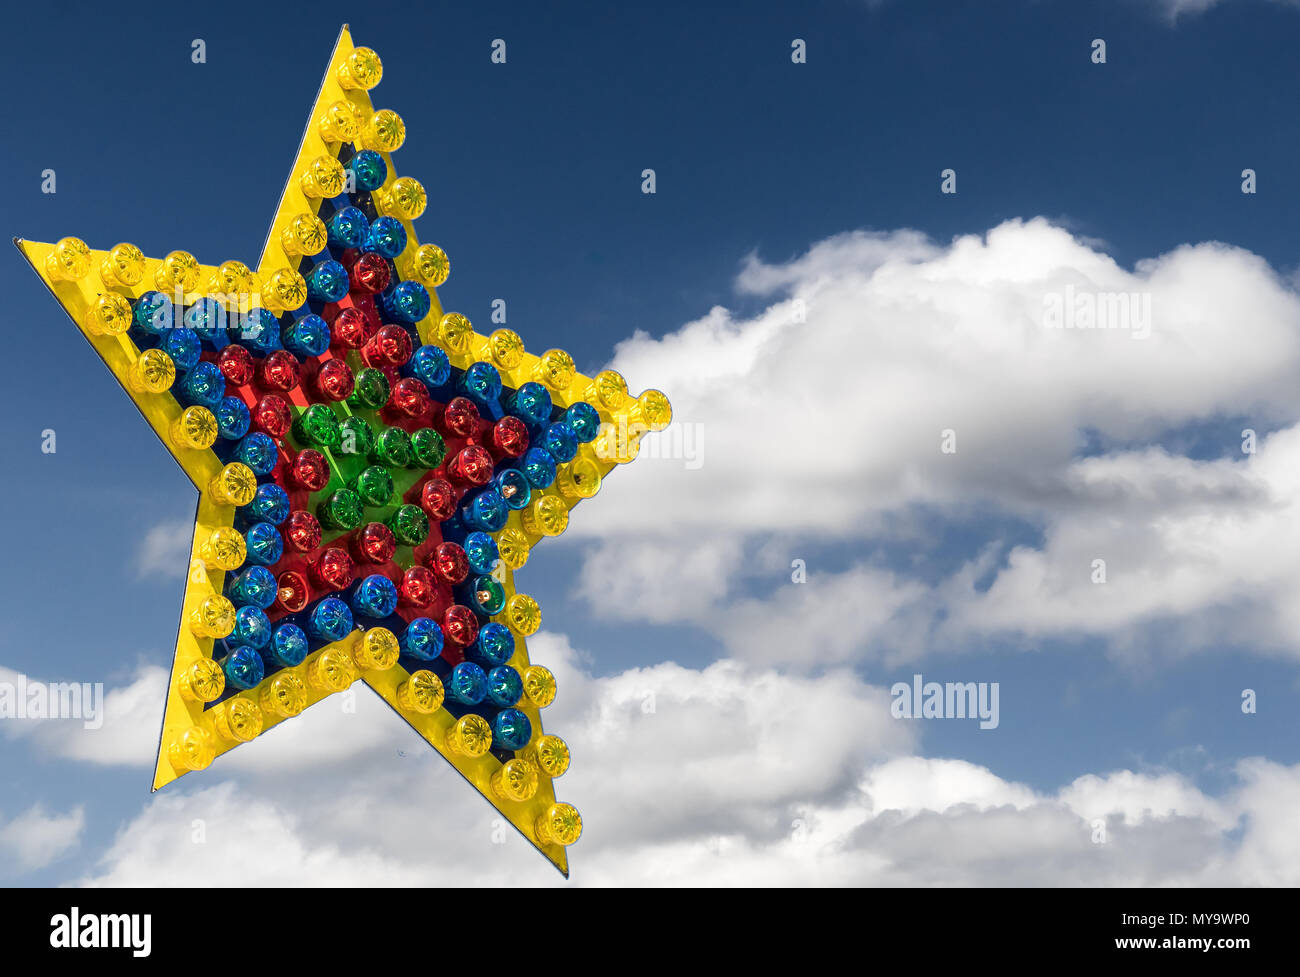 Large colorful star of differently colored lamps exempted in front of a blue sky with clouds, illustration - Stock Image